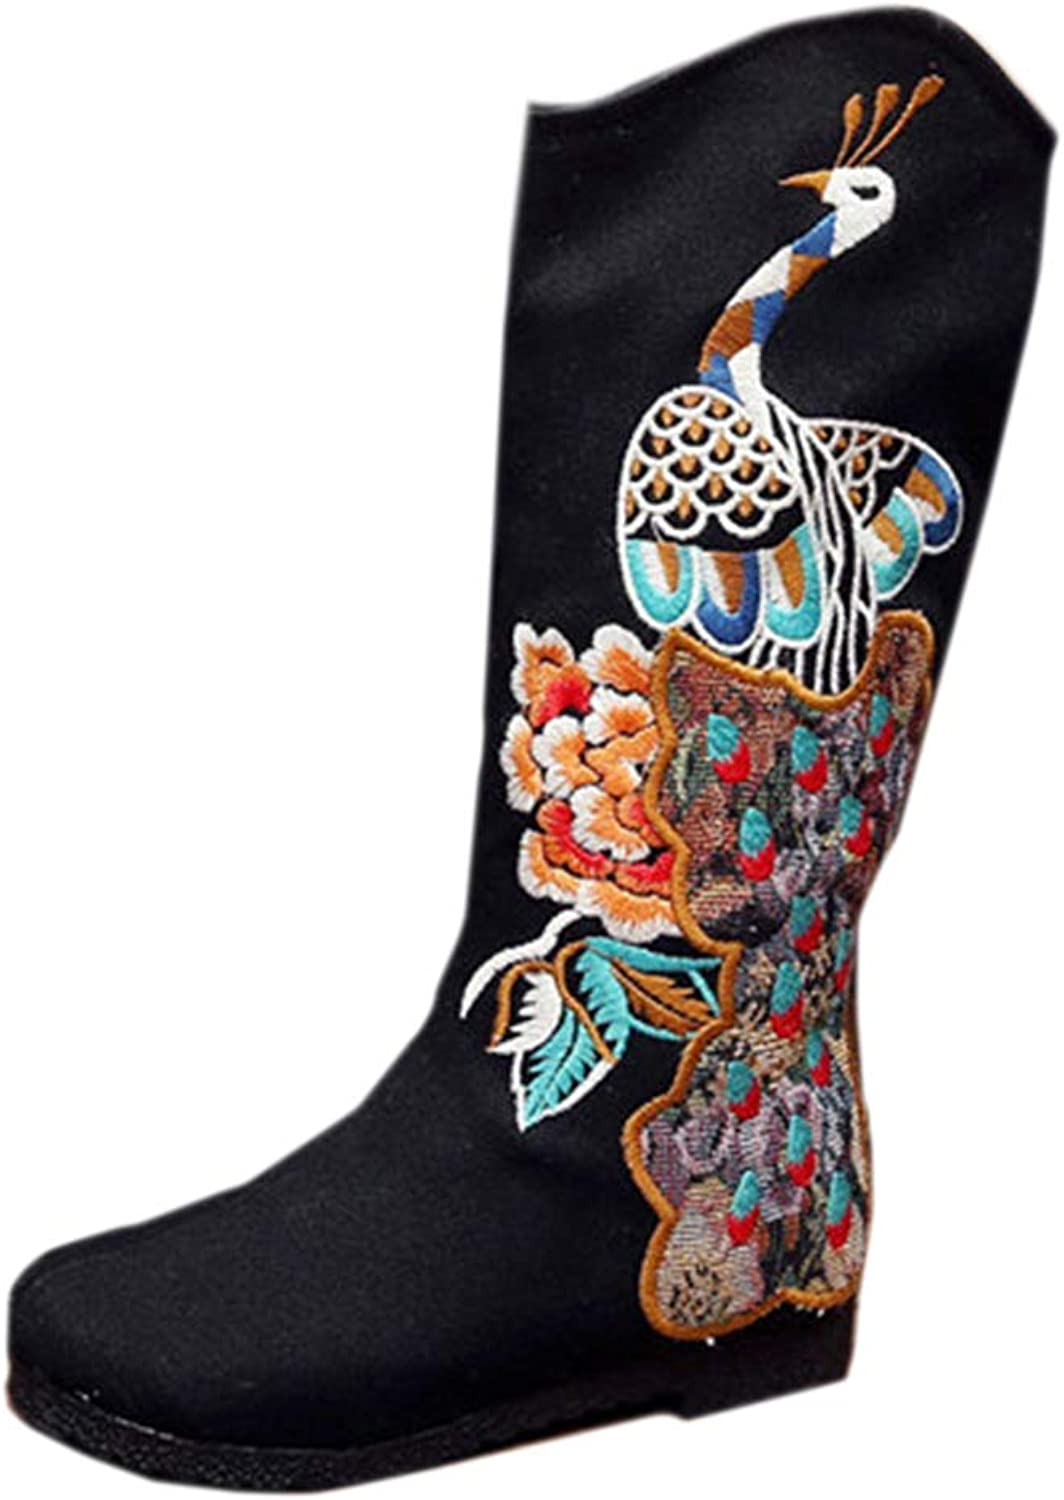 Longxing Peacock Vintage Beijing Cloth shoes Embroidered Boots